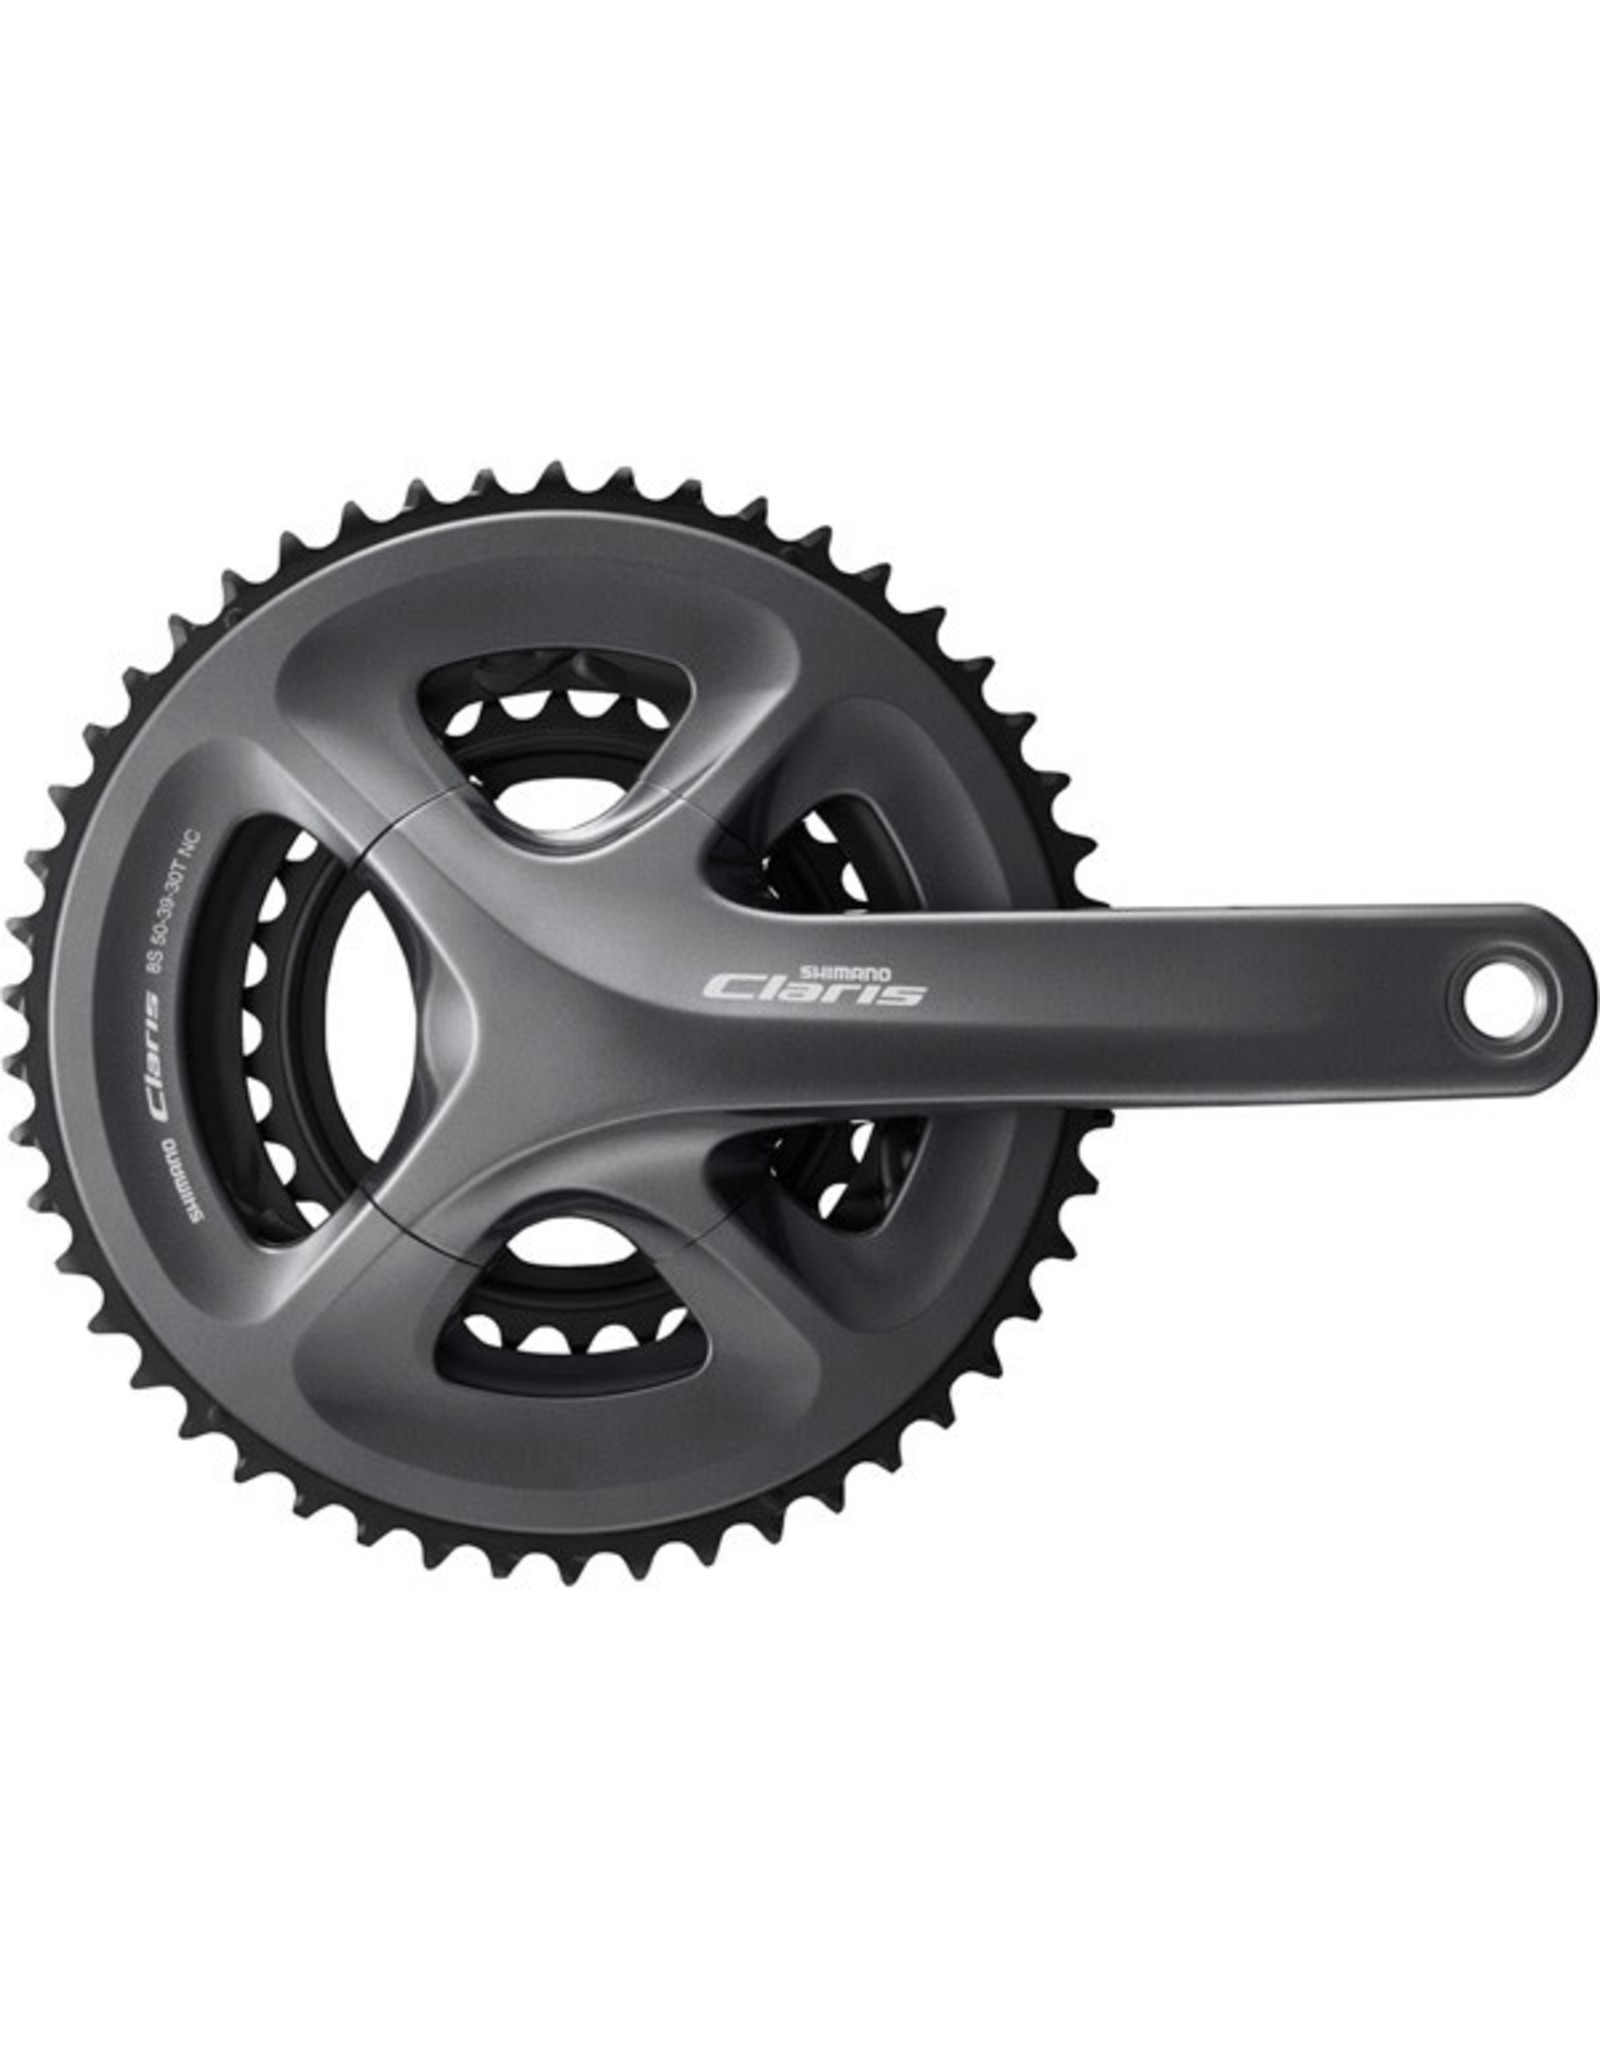 Shimano Chainset 8 Speed Claris R2030